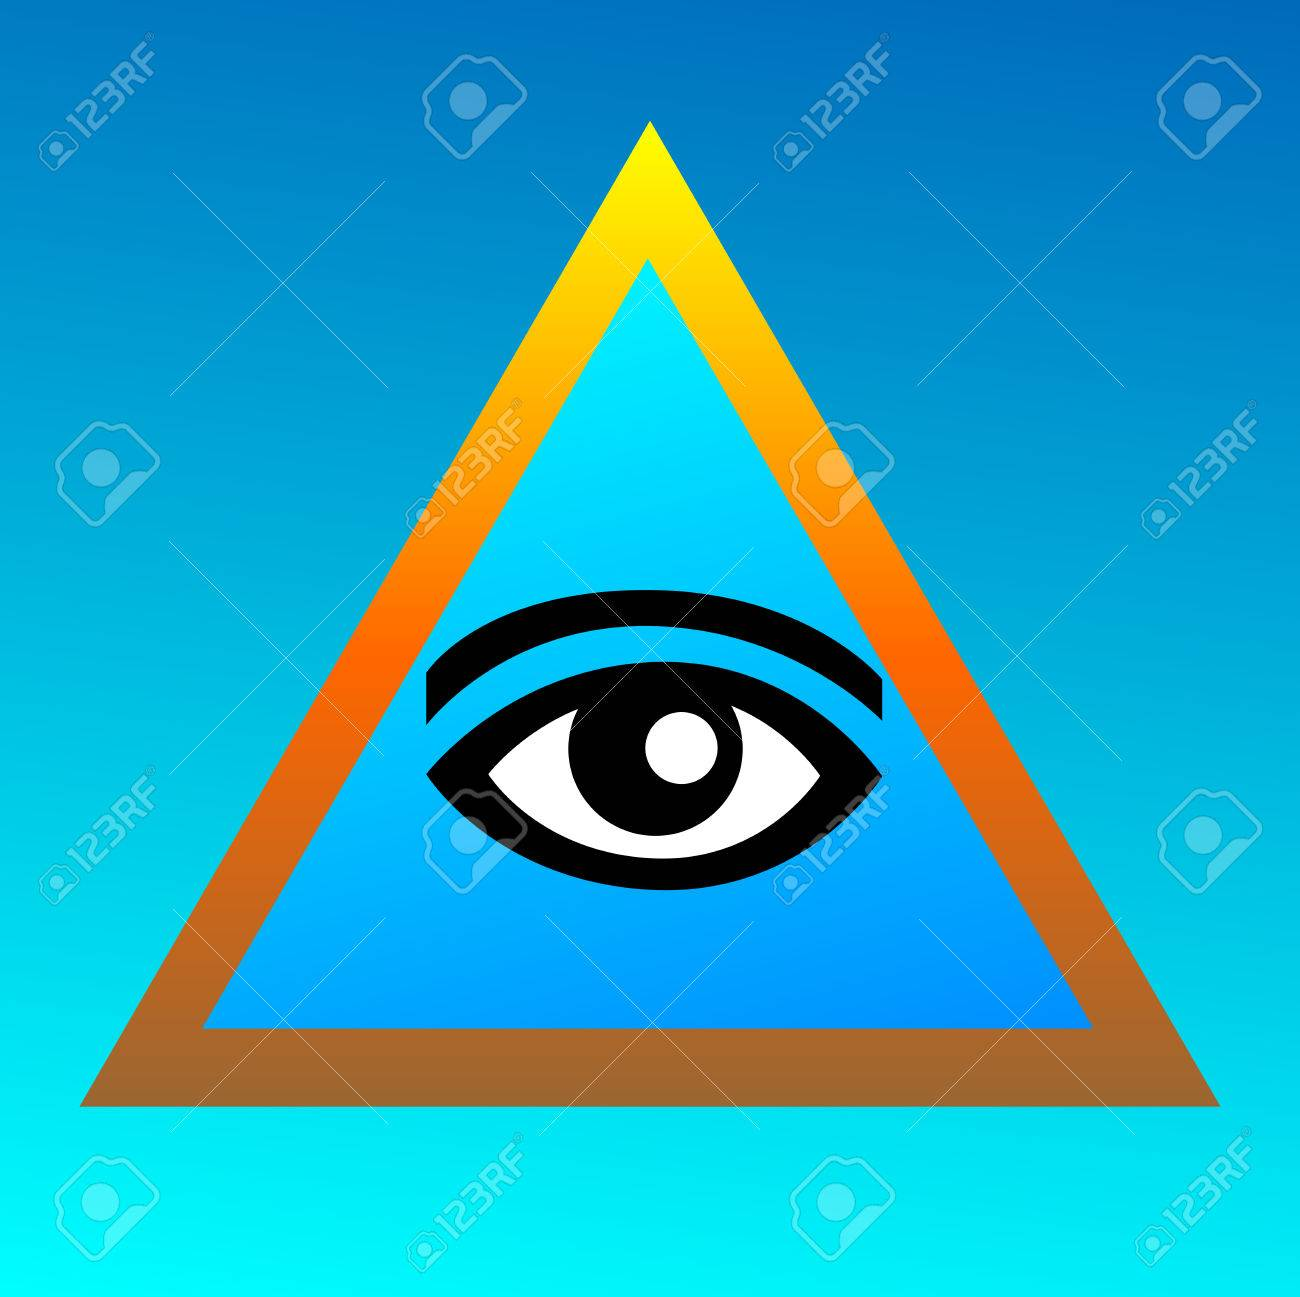 Symbolism Of Freemasonry On A Blue Background Eye In The Golden